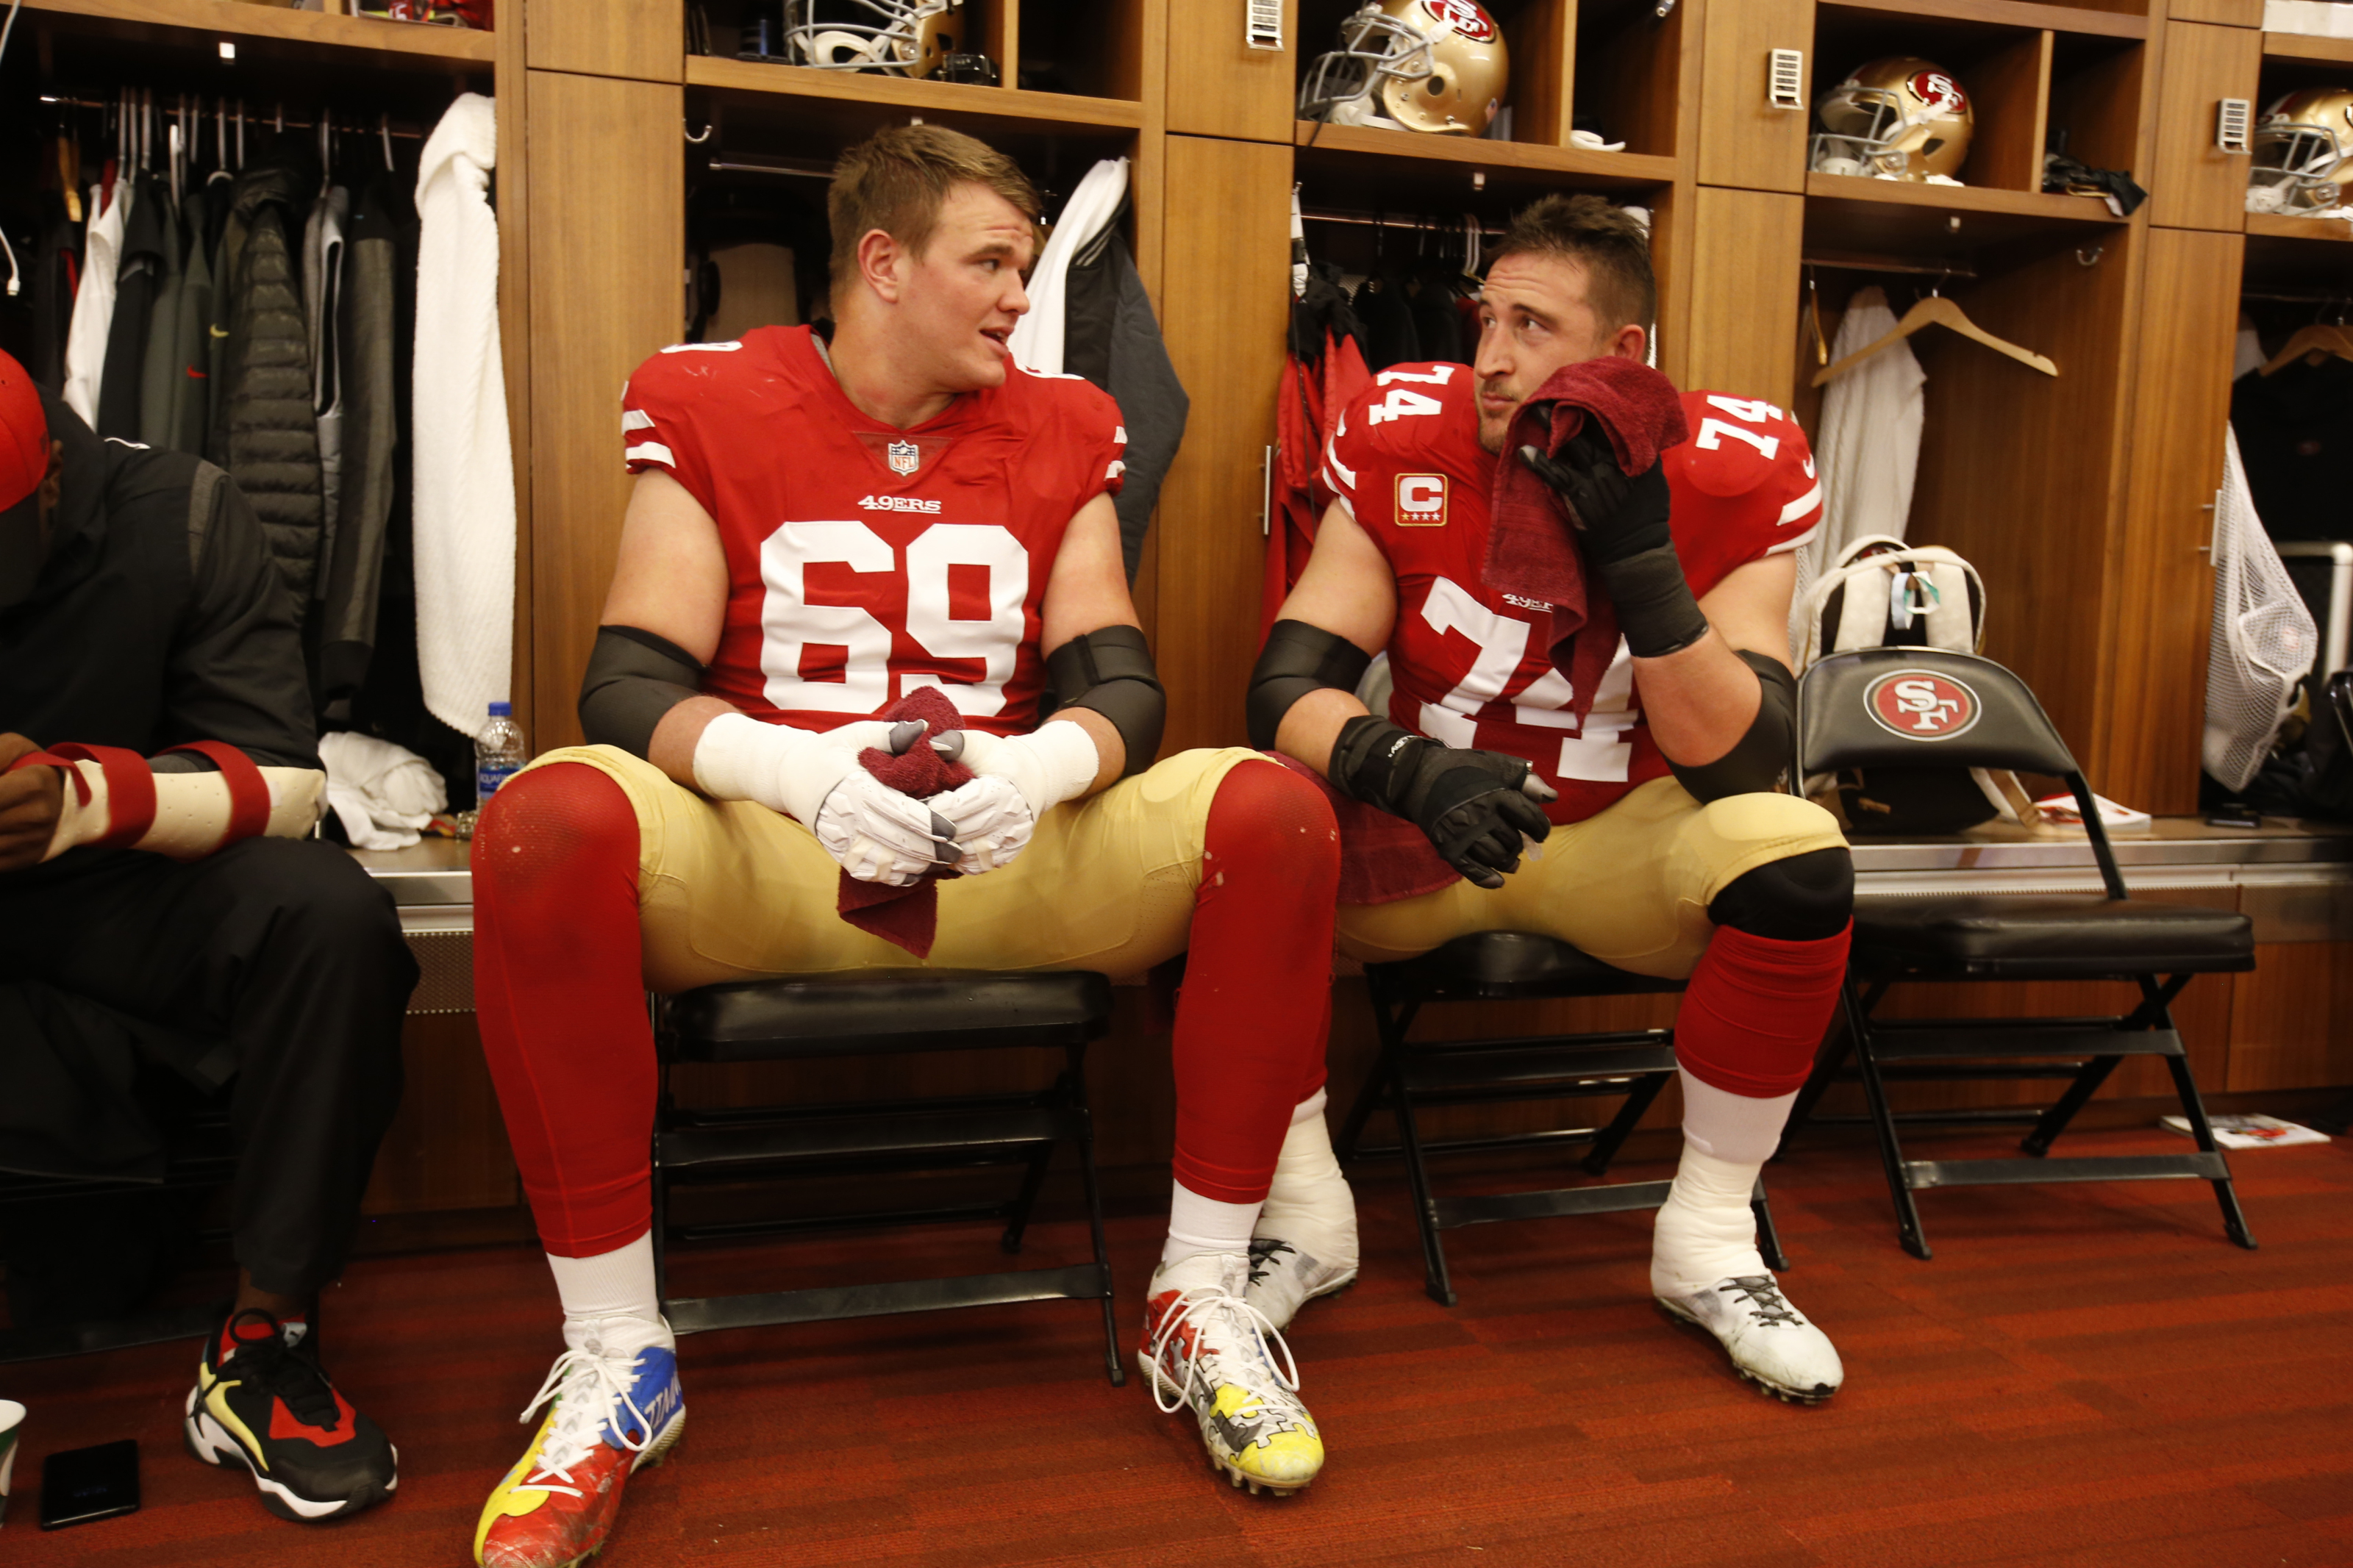 49ers: Don't expect Mike McGlinchey to take over for Joe Staley